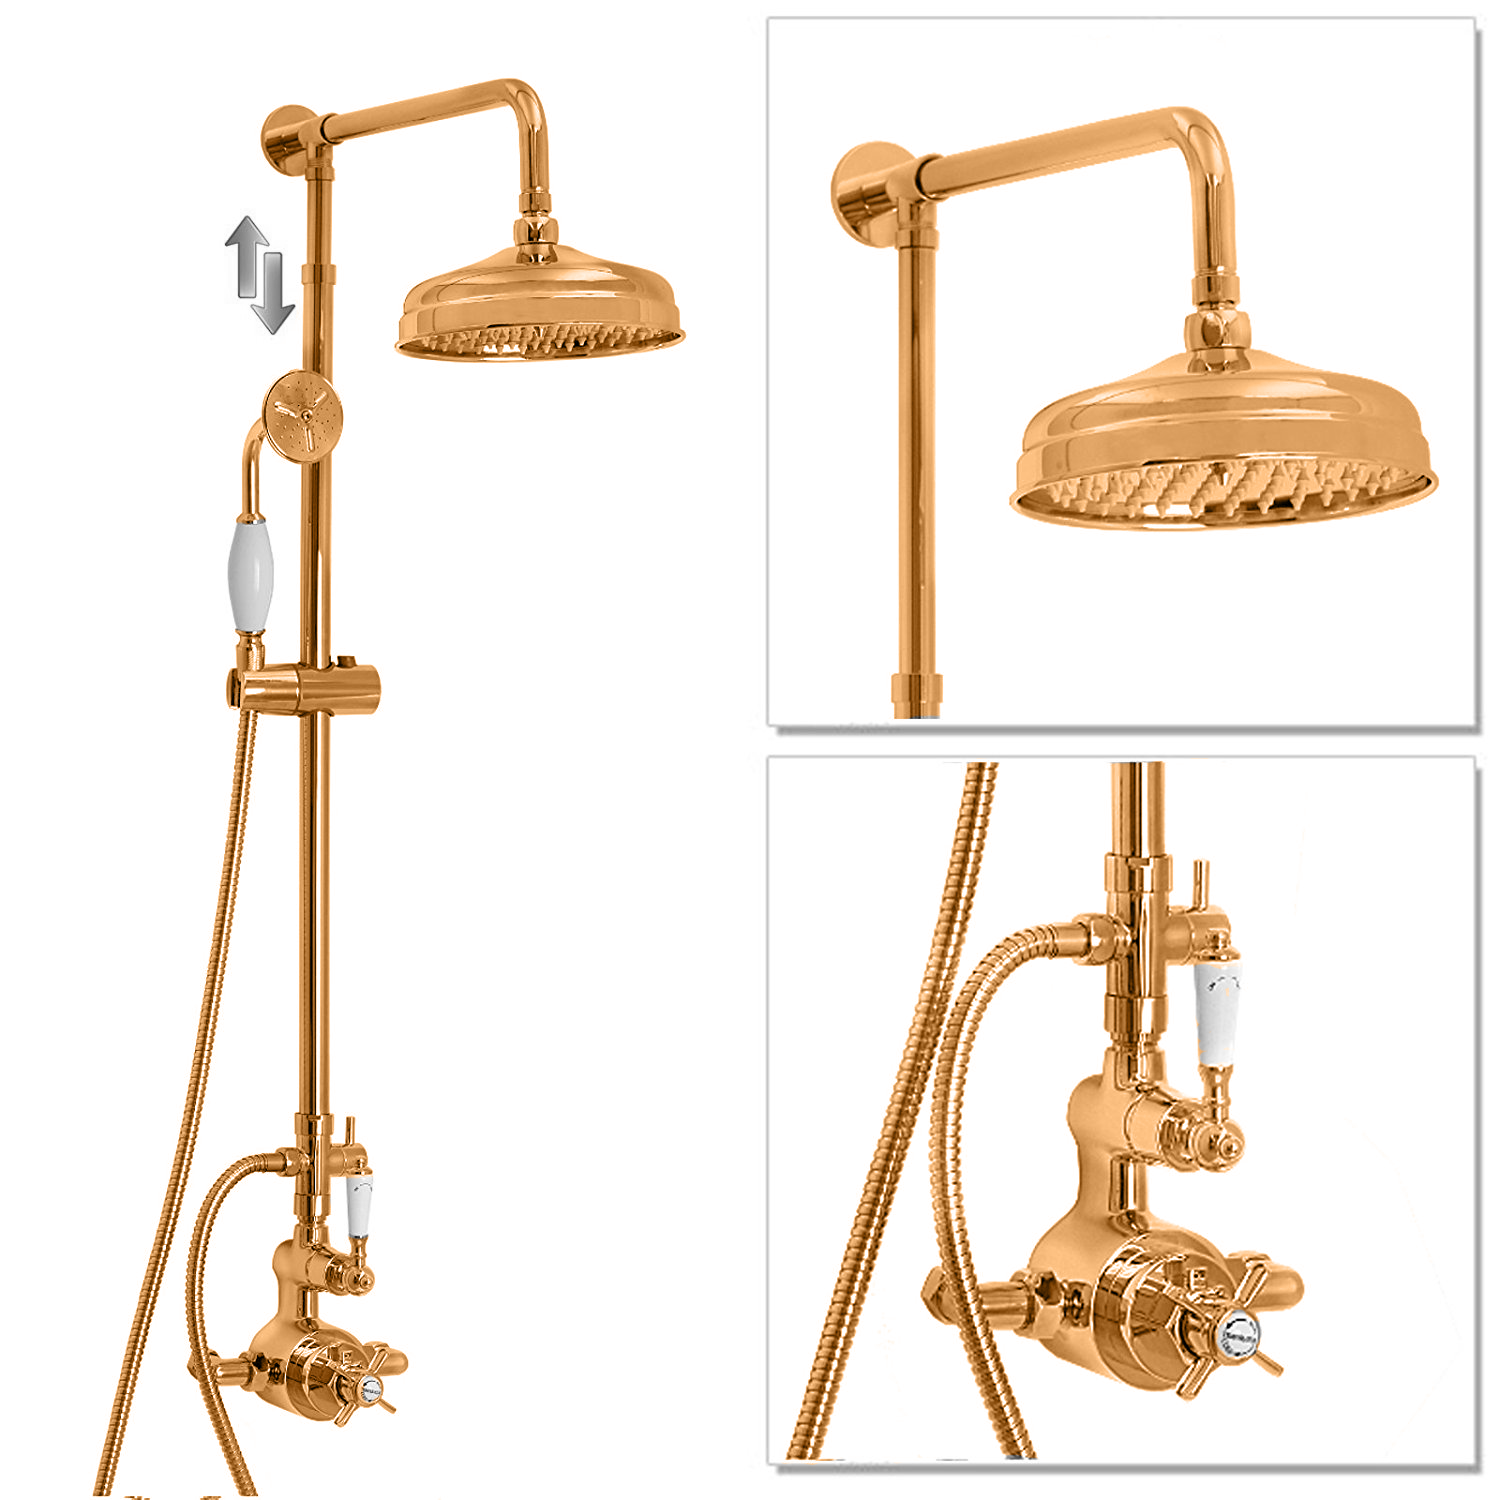 DoratO Traditional Thermostatic Shower Set with handset in 24ct Gold